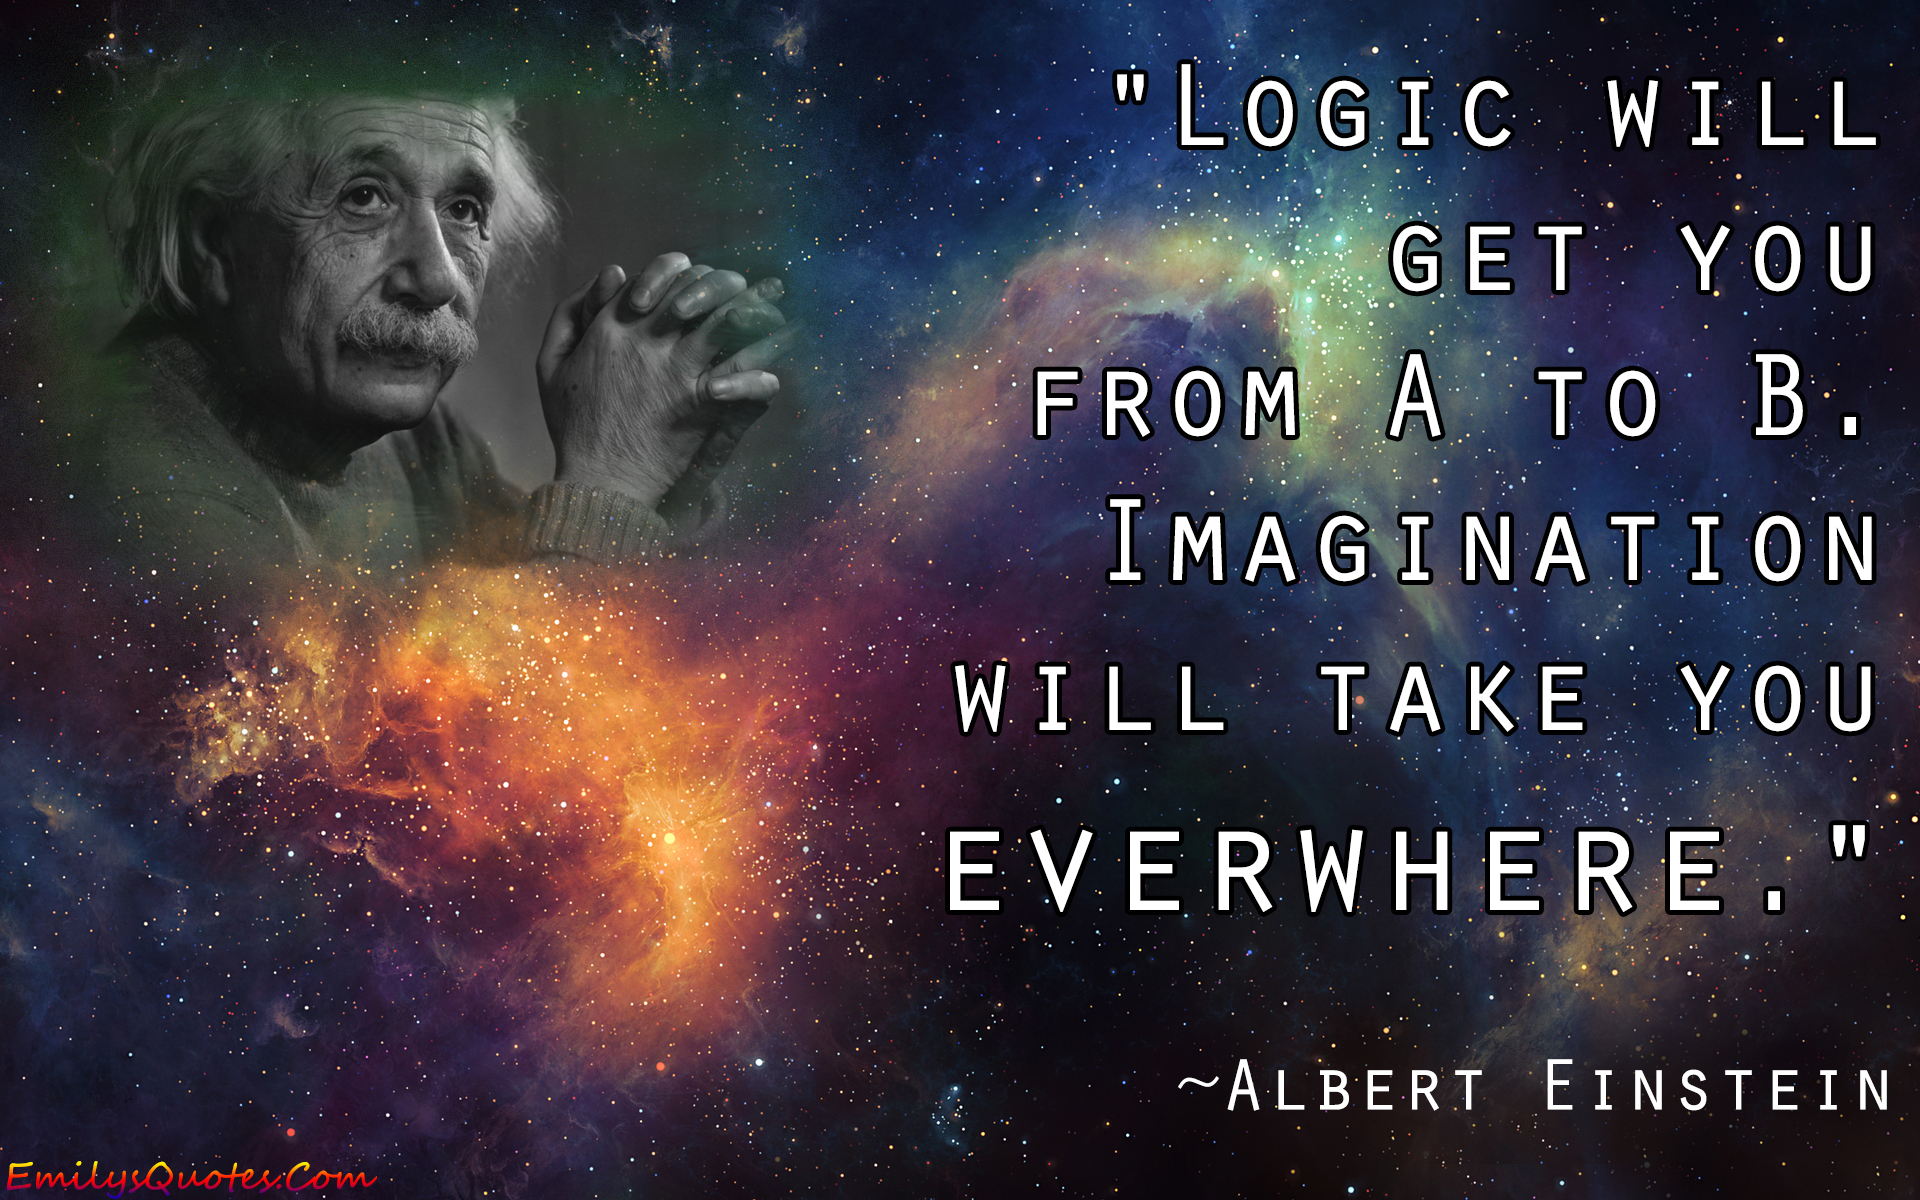 EmilysQuotes.Com - imagination, logic, amazing, inspirational, intelligence, Albert Einstein